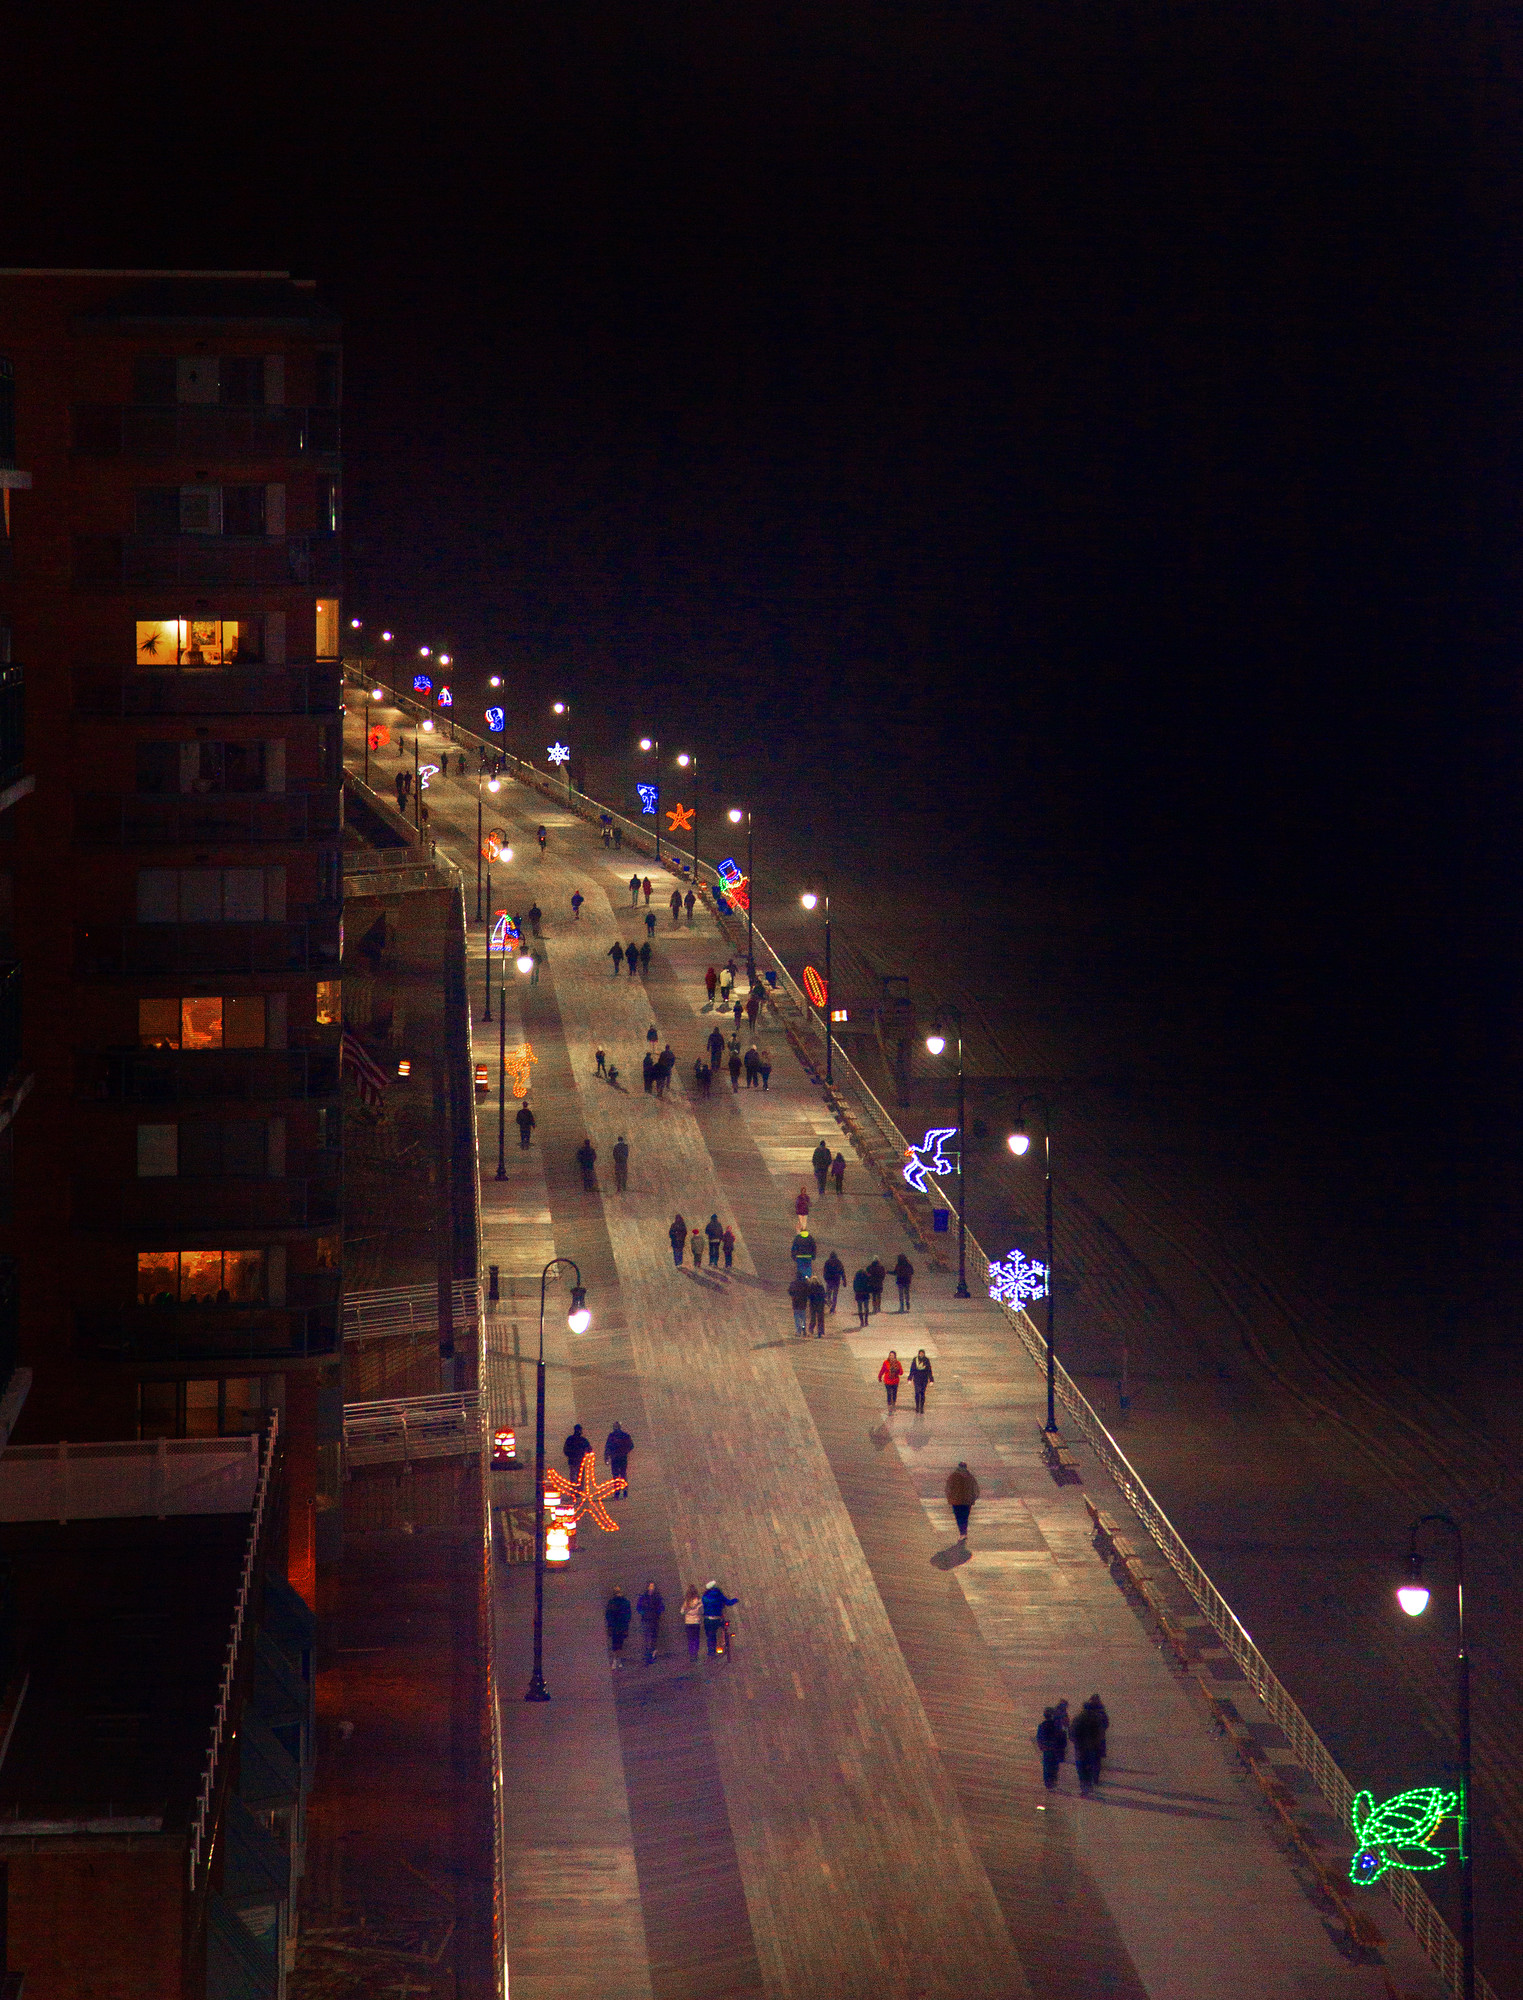 A view of the boardwalk from the top of the Allegria Hotel.